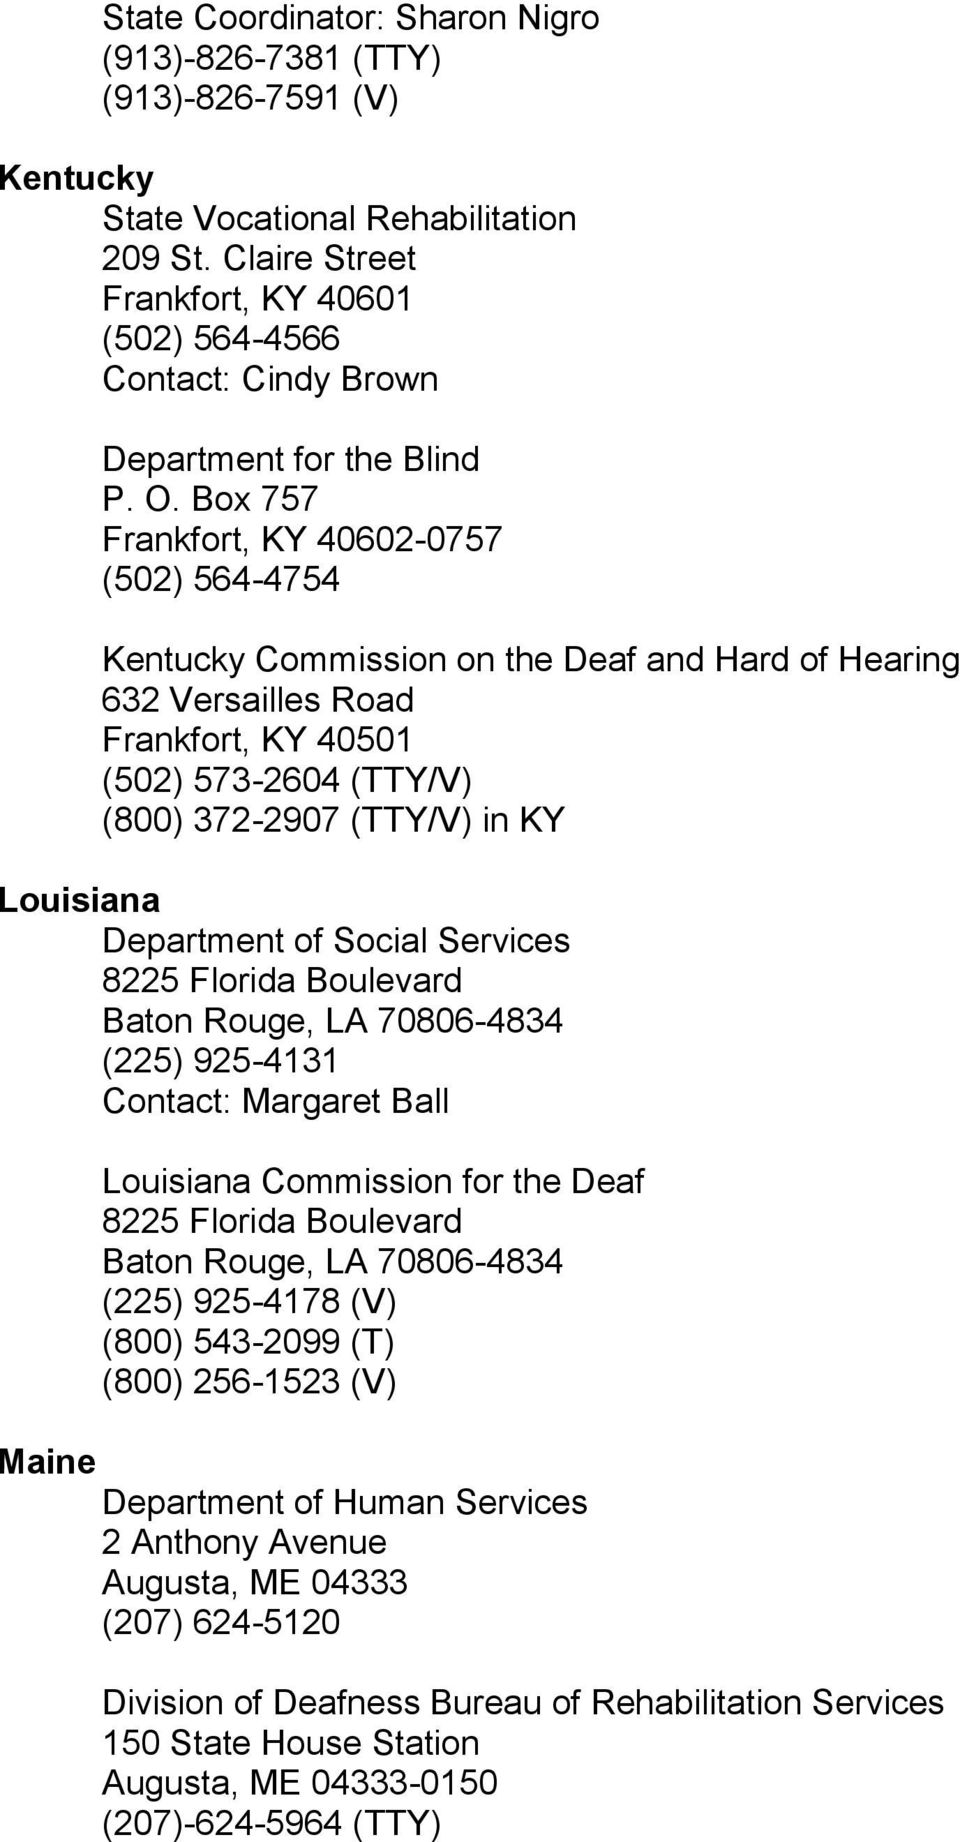 Box 757 Frankfort, KY 40602-0757 (502) 564-4754 Kentucky Commission on the Deaf and Hard of Hearing 632 Versailles Road Frankfort, KY 40501 (502) 573-2604 (TTY/V) (800) 372-2907 (TTY/V) in KY